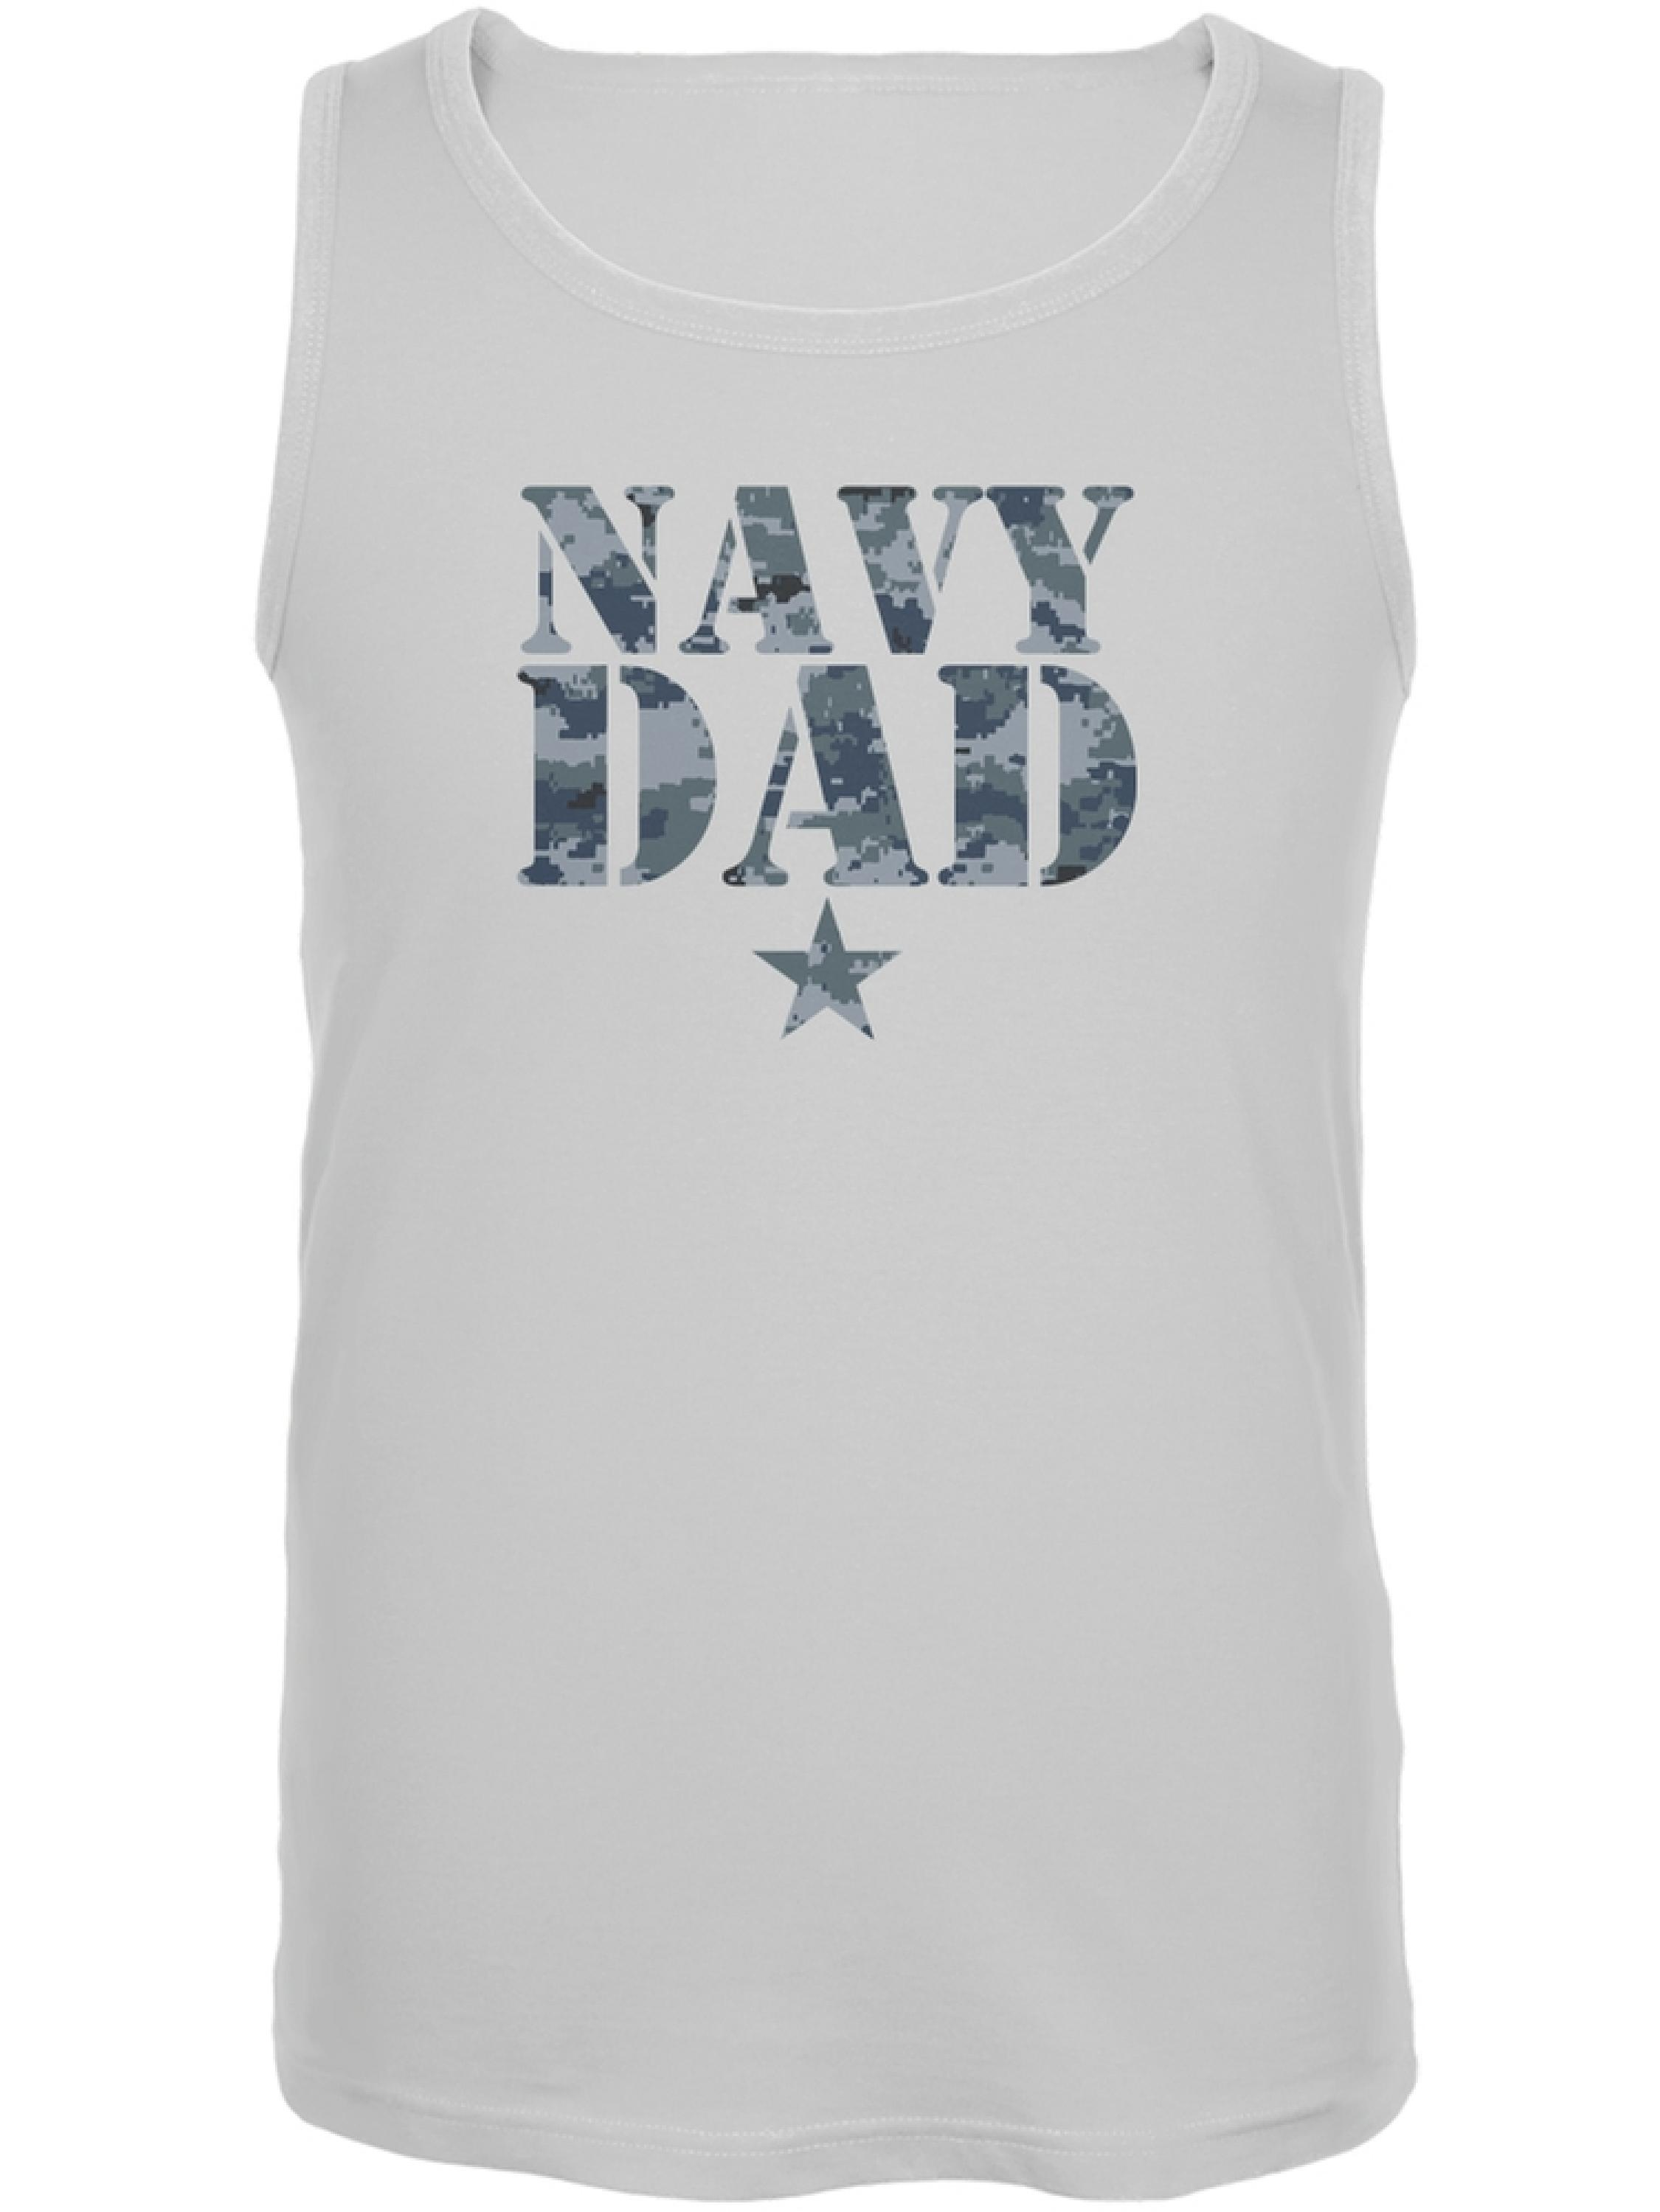 Navy Dad White Adult Tank Top